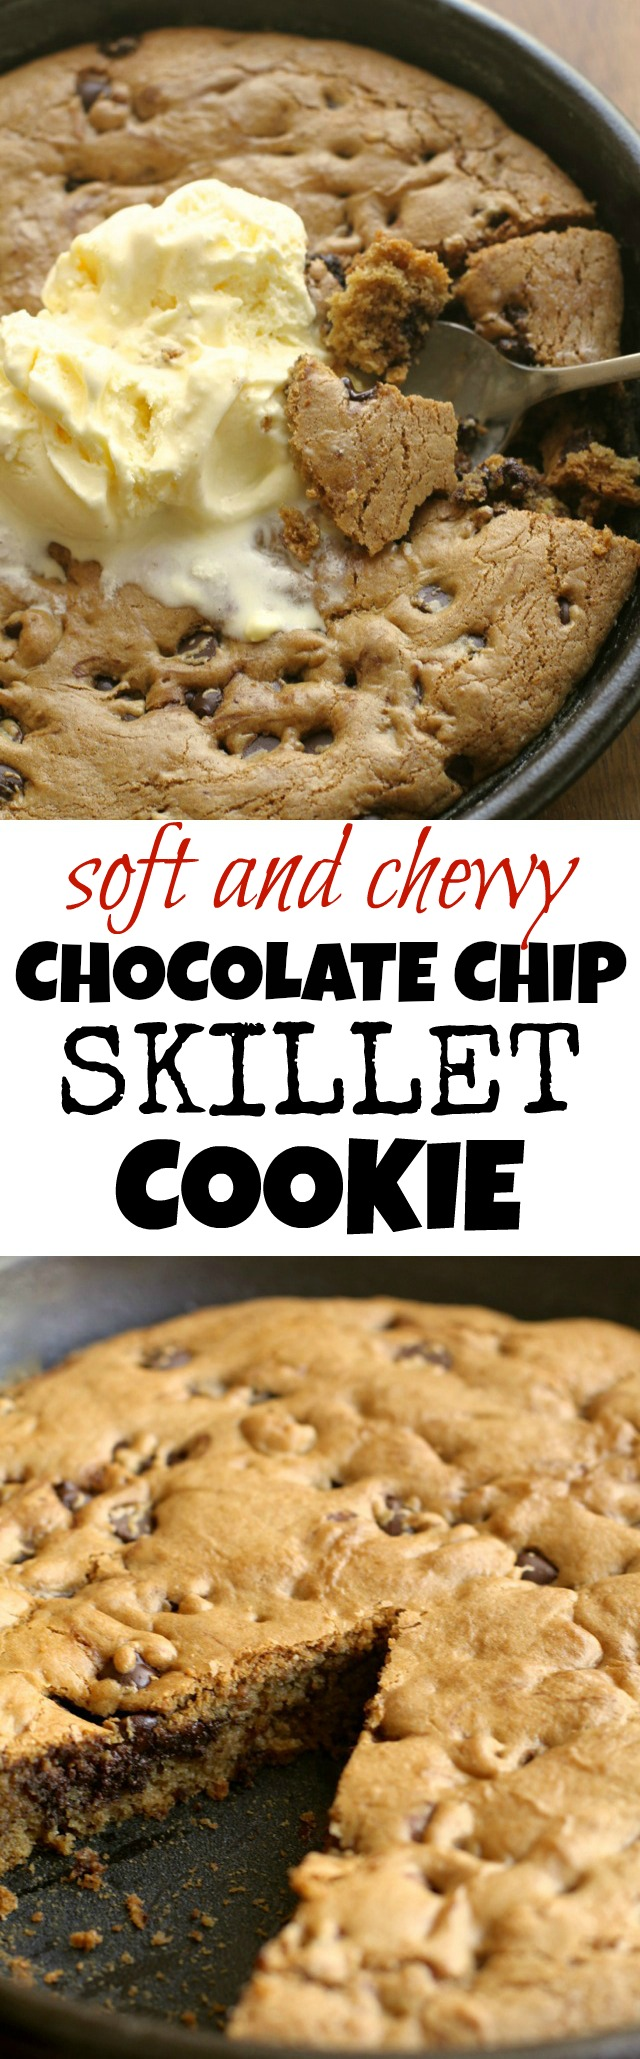 Soft and Chewy Chocolate Chip Skillet Cookie | running with spoons